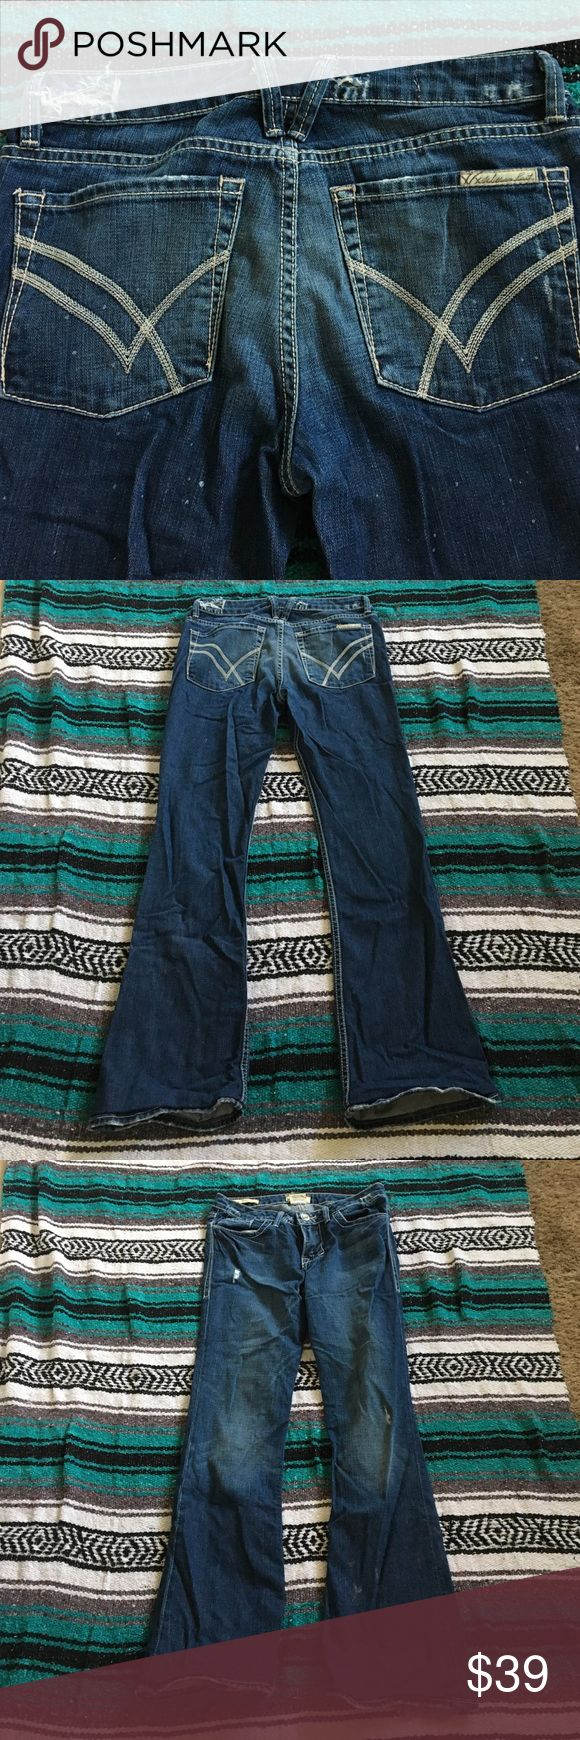 "EUC William Rast jeans Stella bootcut 26 short These are so cute. Factory distressing. No signs of wear. Hemmed with euro fold hems. Inseam 30"". Size 27. William Rast Jeans Boot Cut"